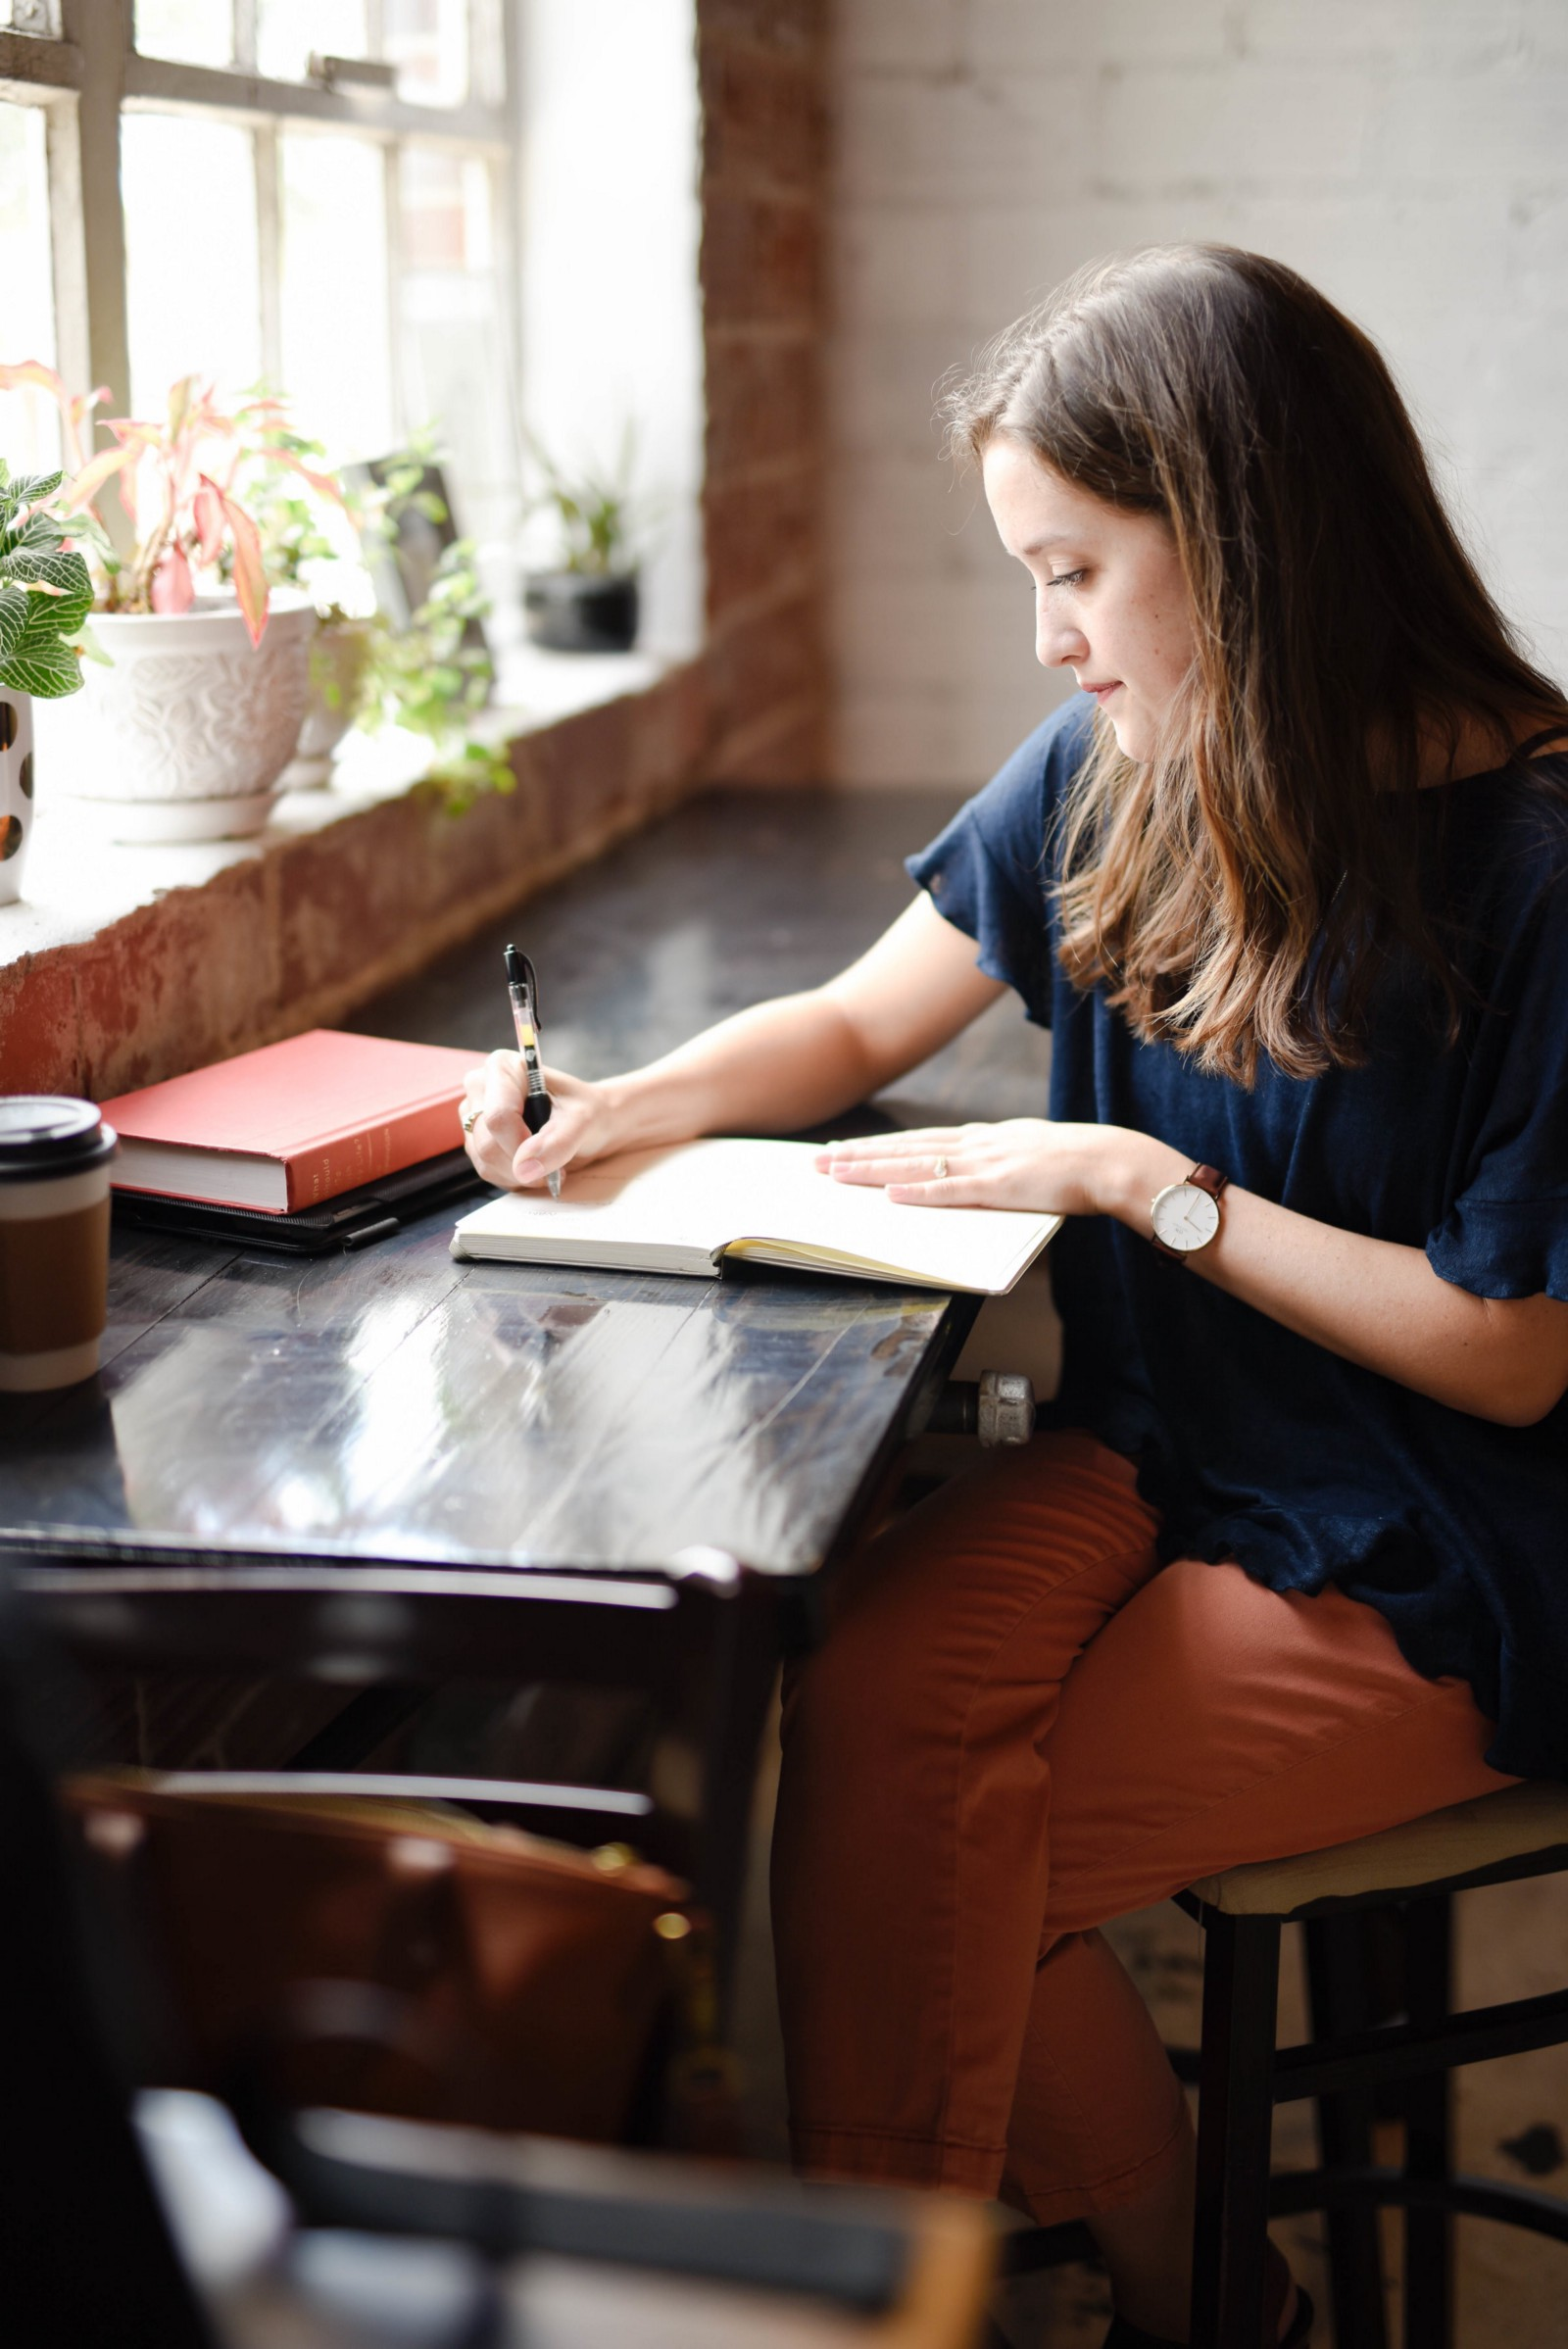 Want To Get Better At Writing? Don't be Precious With Your Work